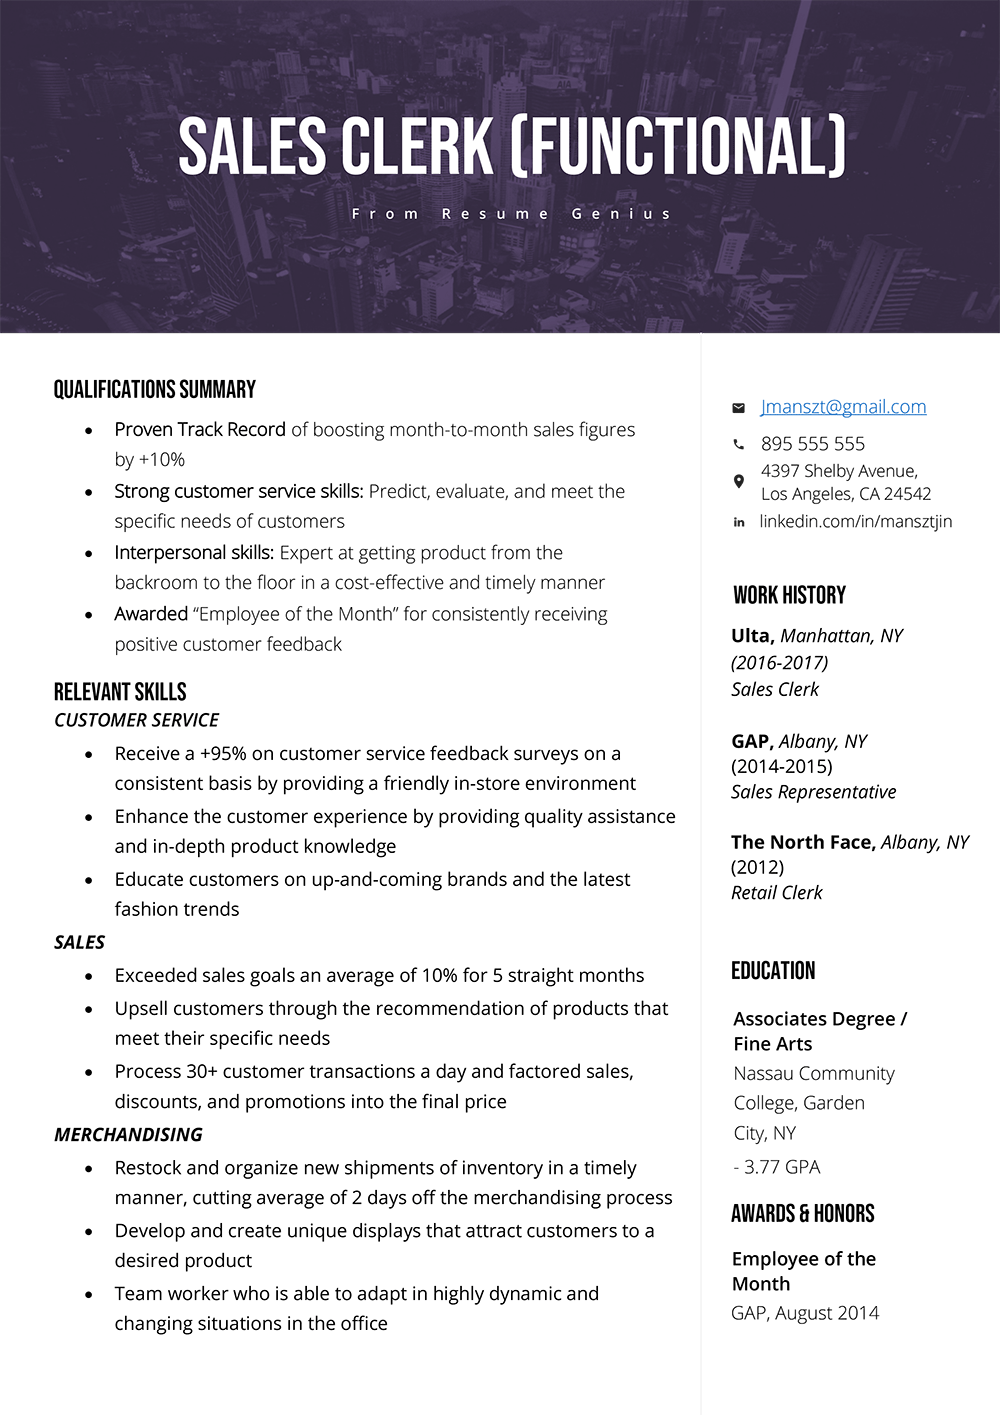 Functional Resume Template, Examples & Writing Guide in